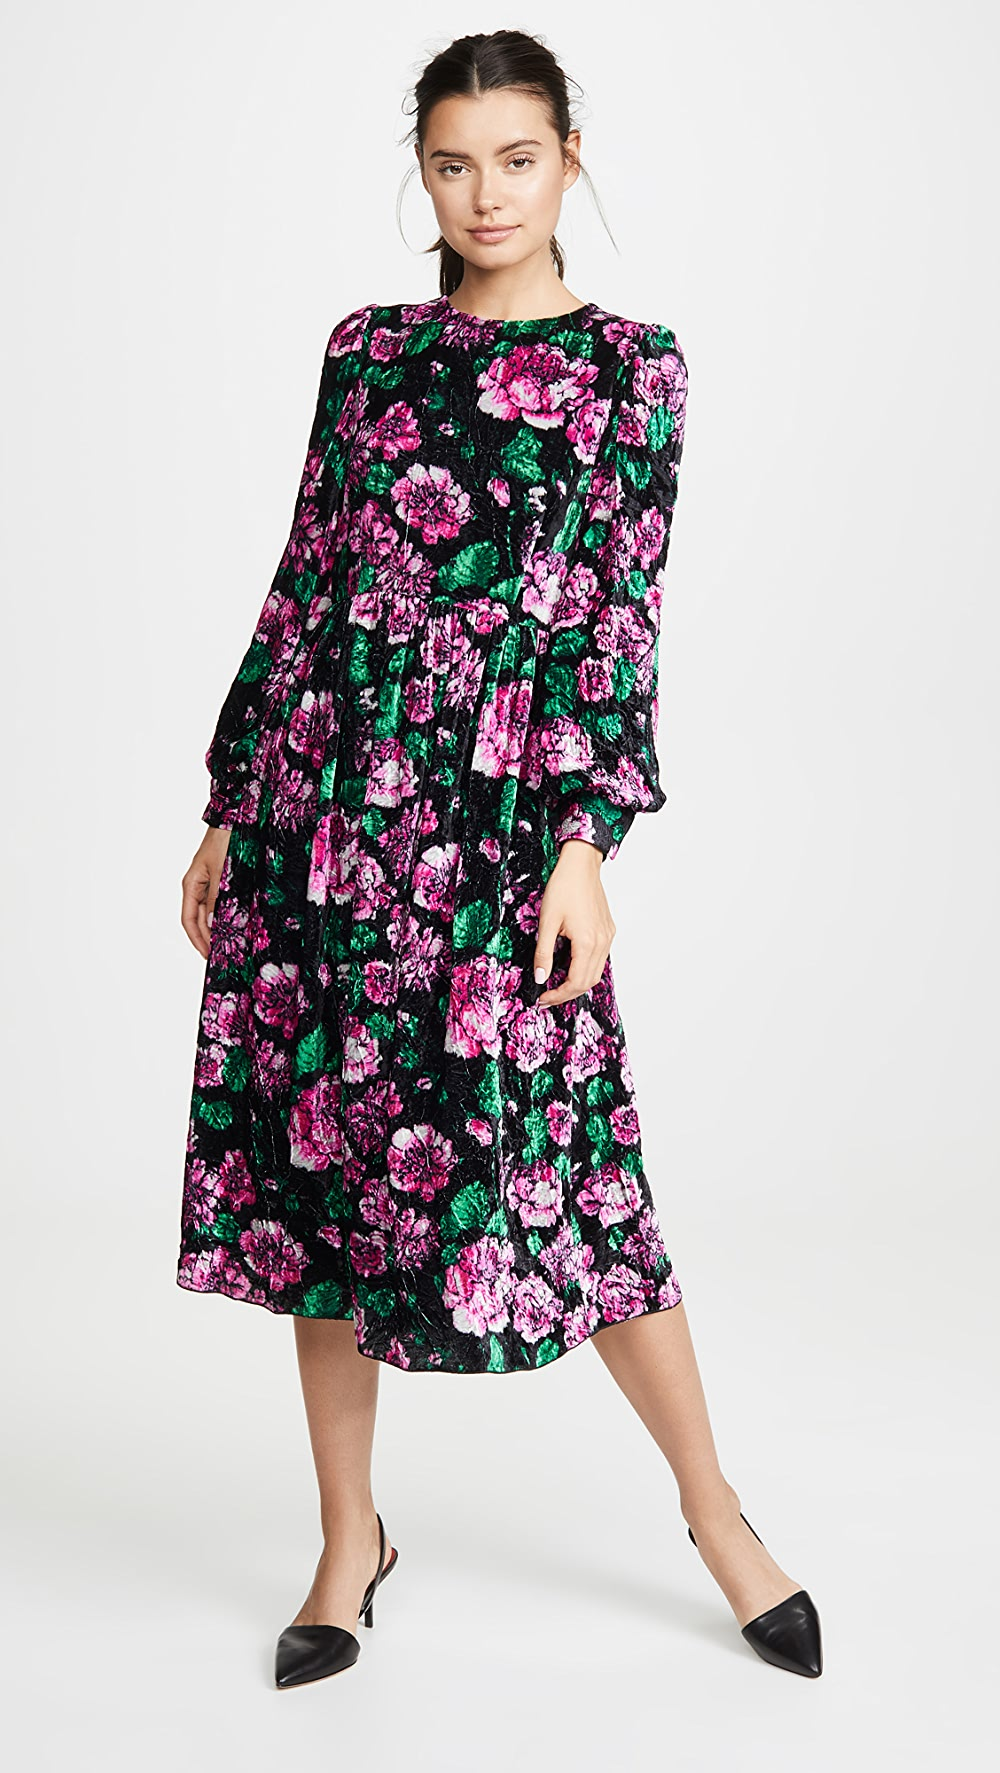 Brilliant The Marc Jacobs - Blouson Sleeve Flare Dress Spare No Cost At Any Cost